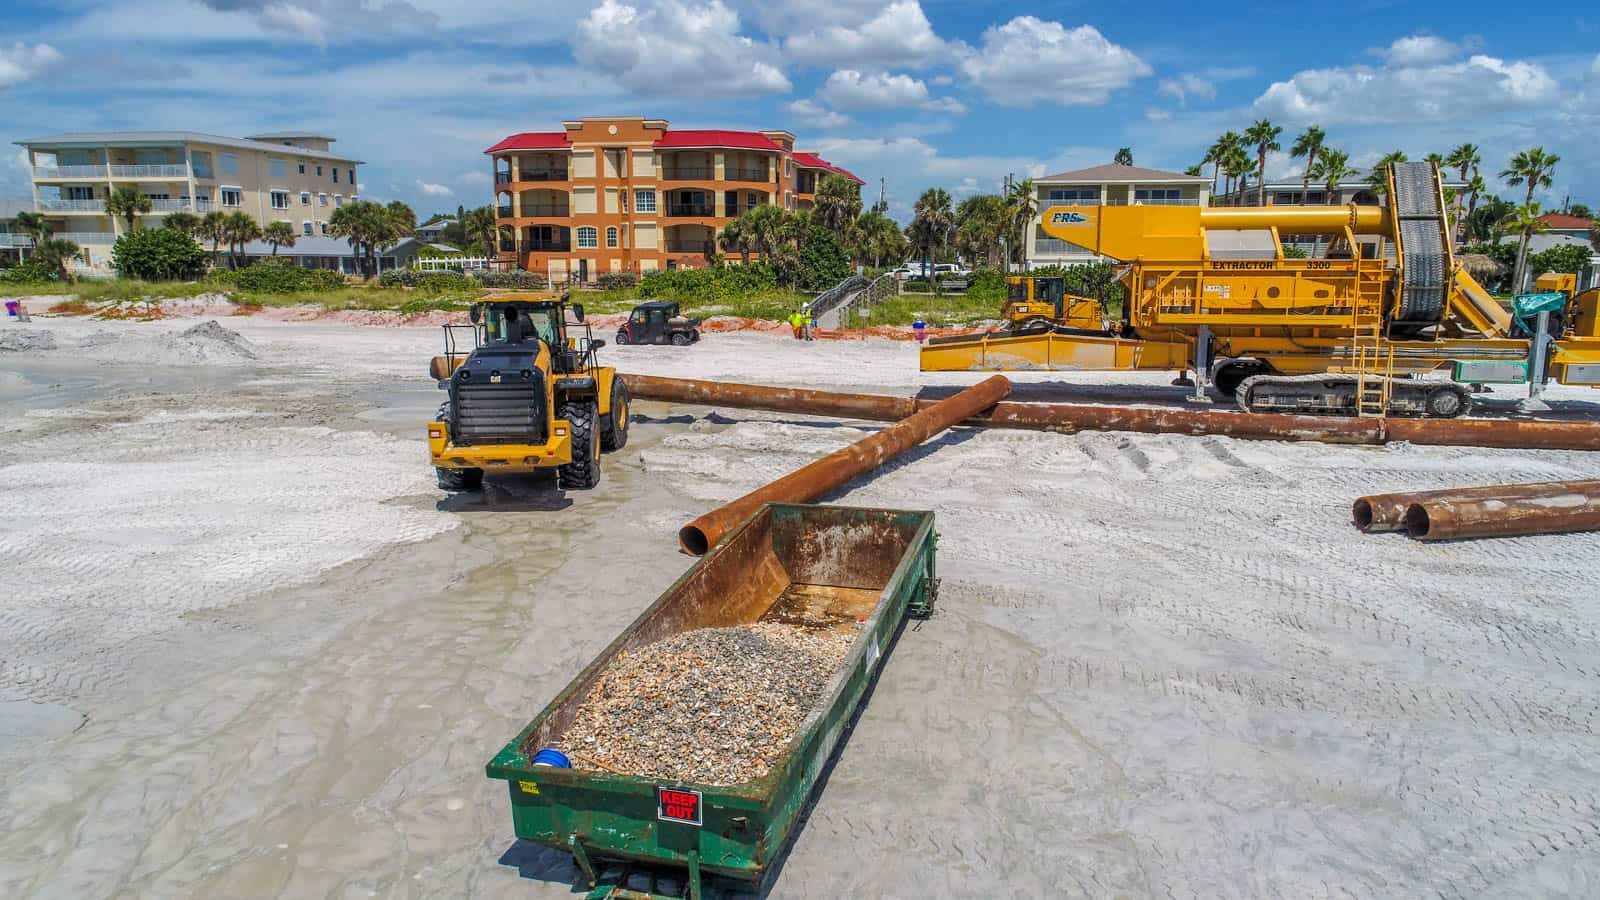 drone photo of water filtration equipment on Clearwater Beach, Clearwater, FL